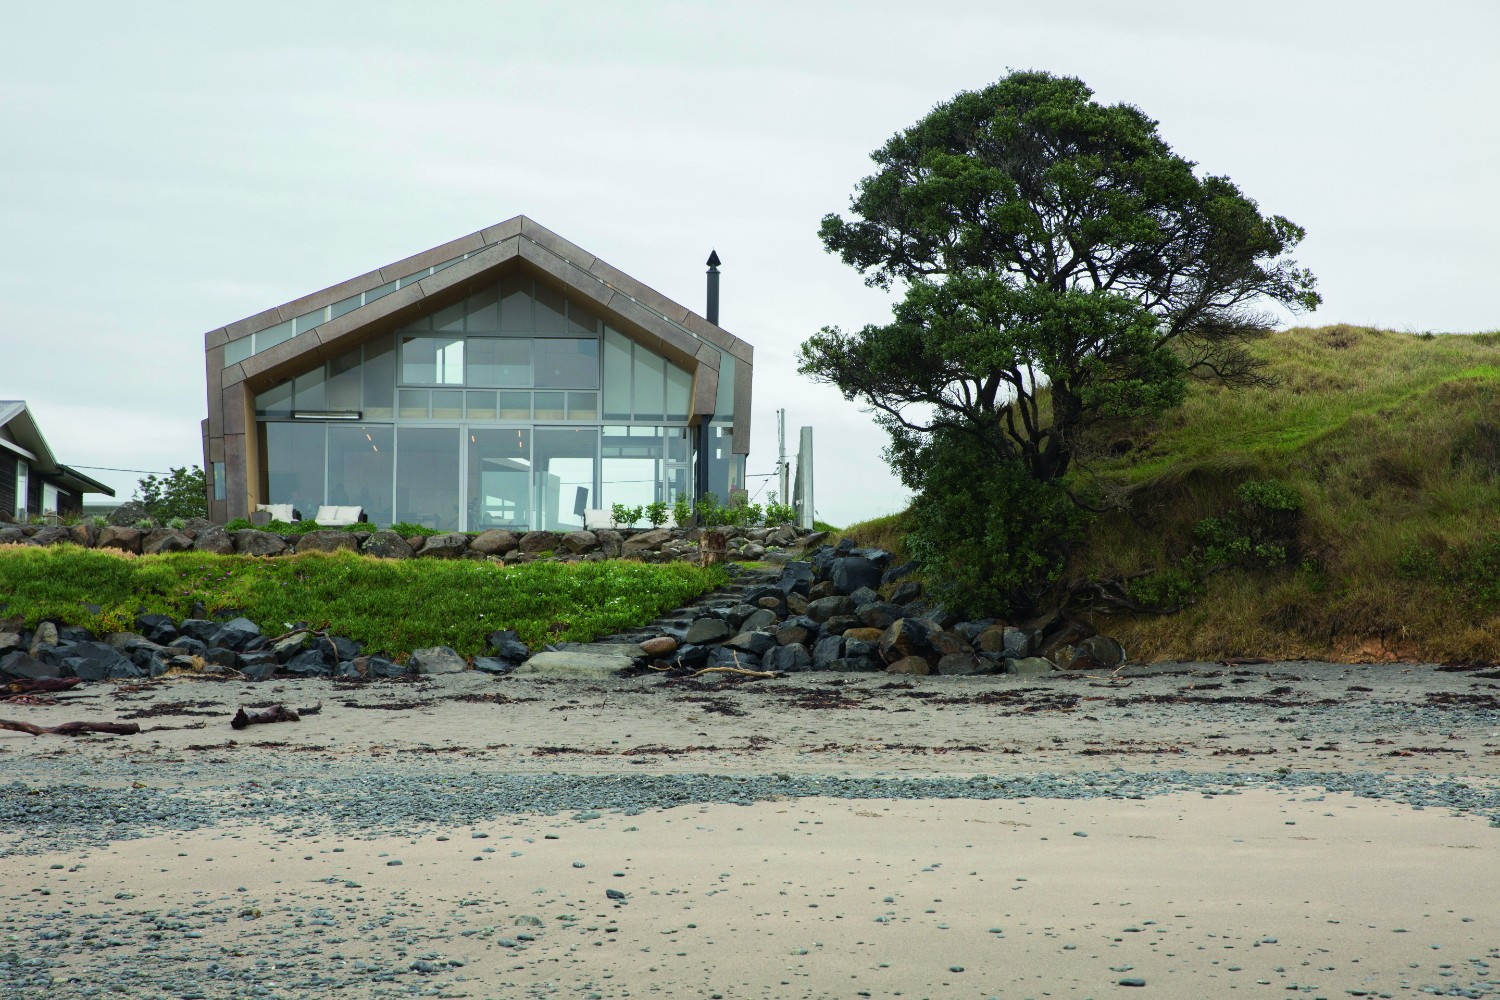 Grand Designs Australia: Rusty reveal - modern bach house - house near beach